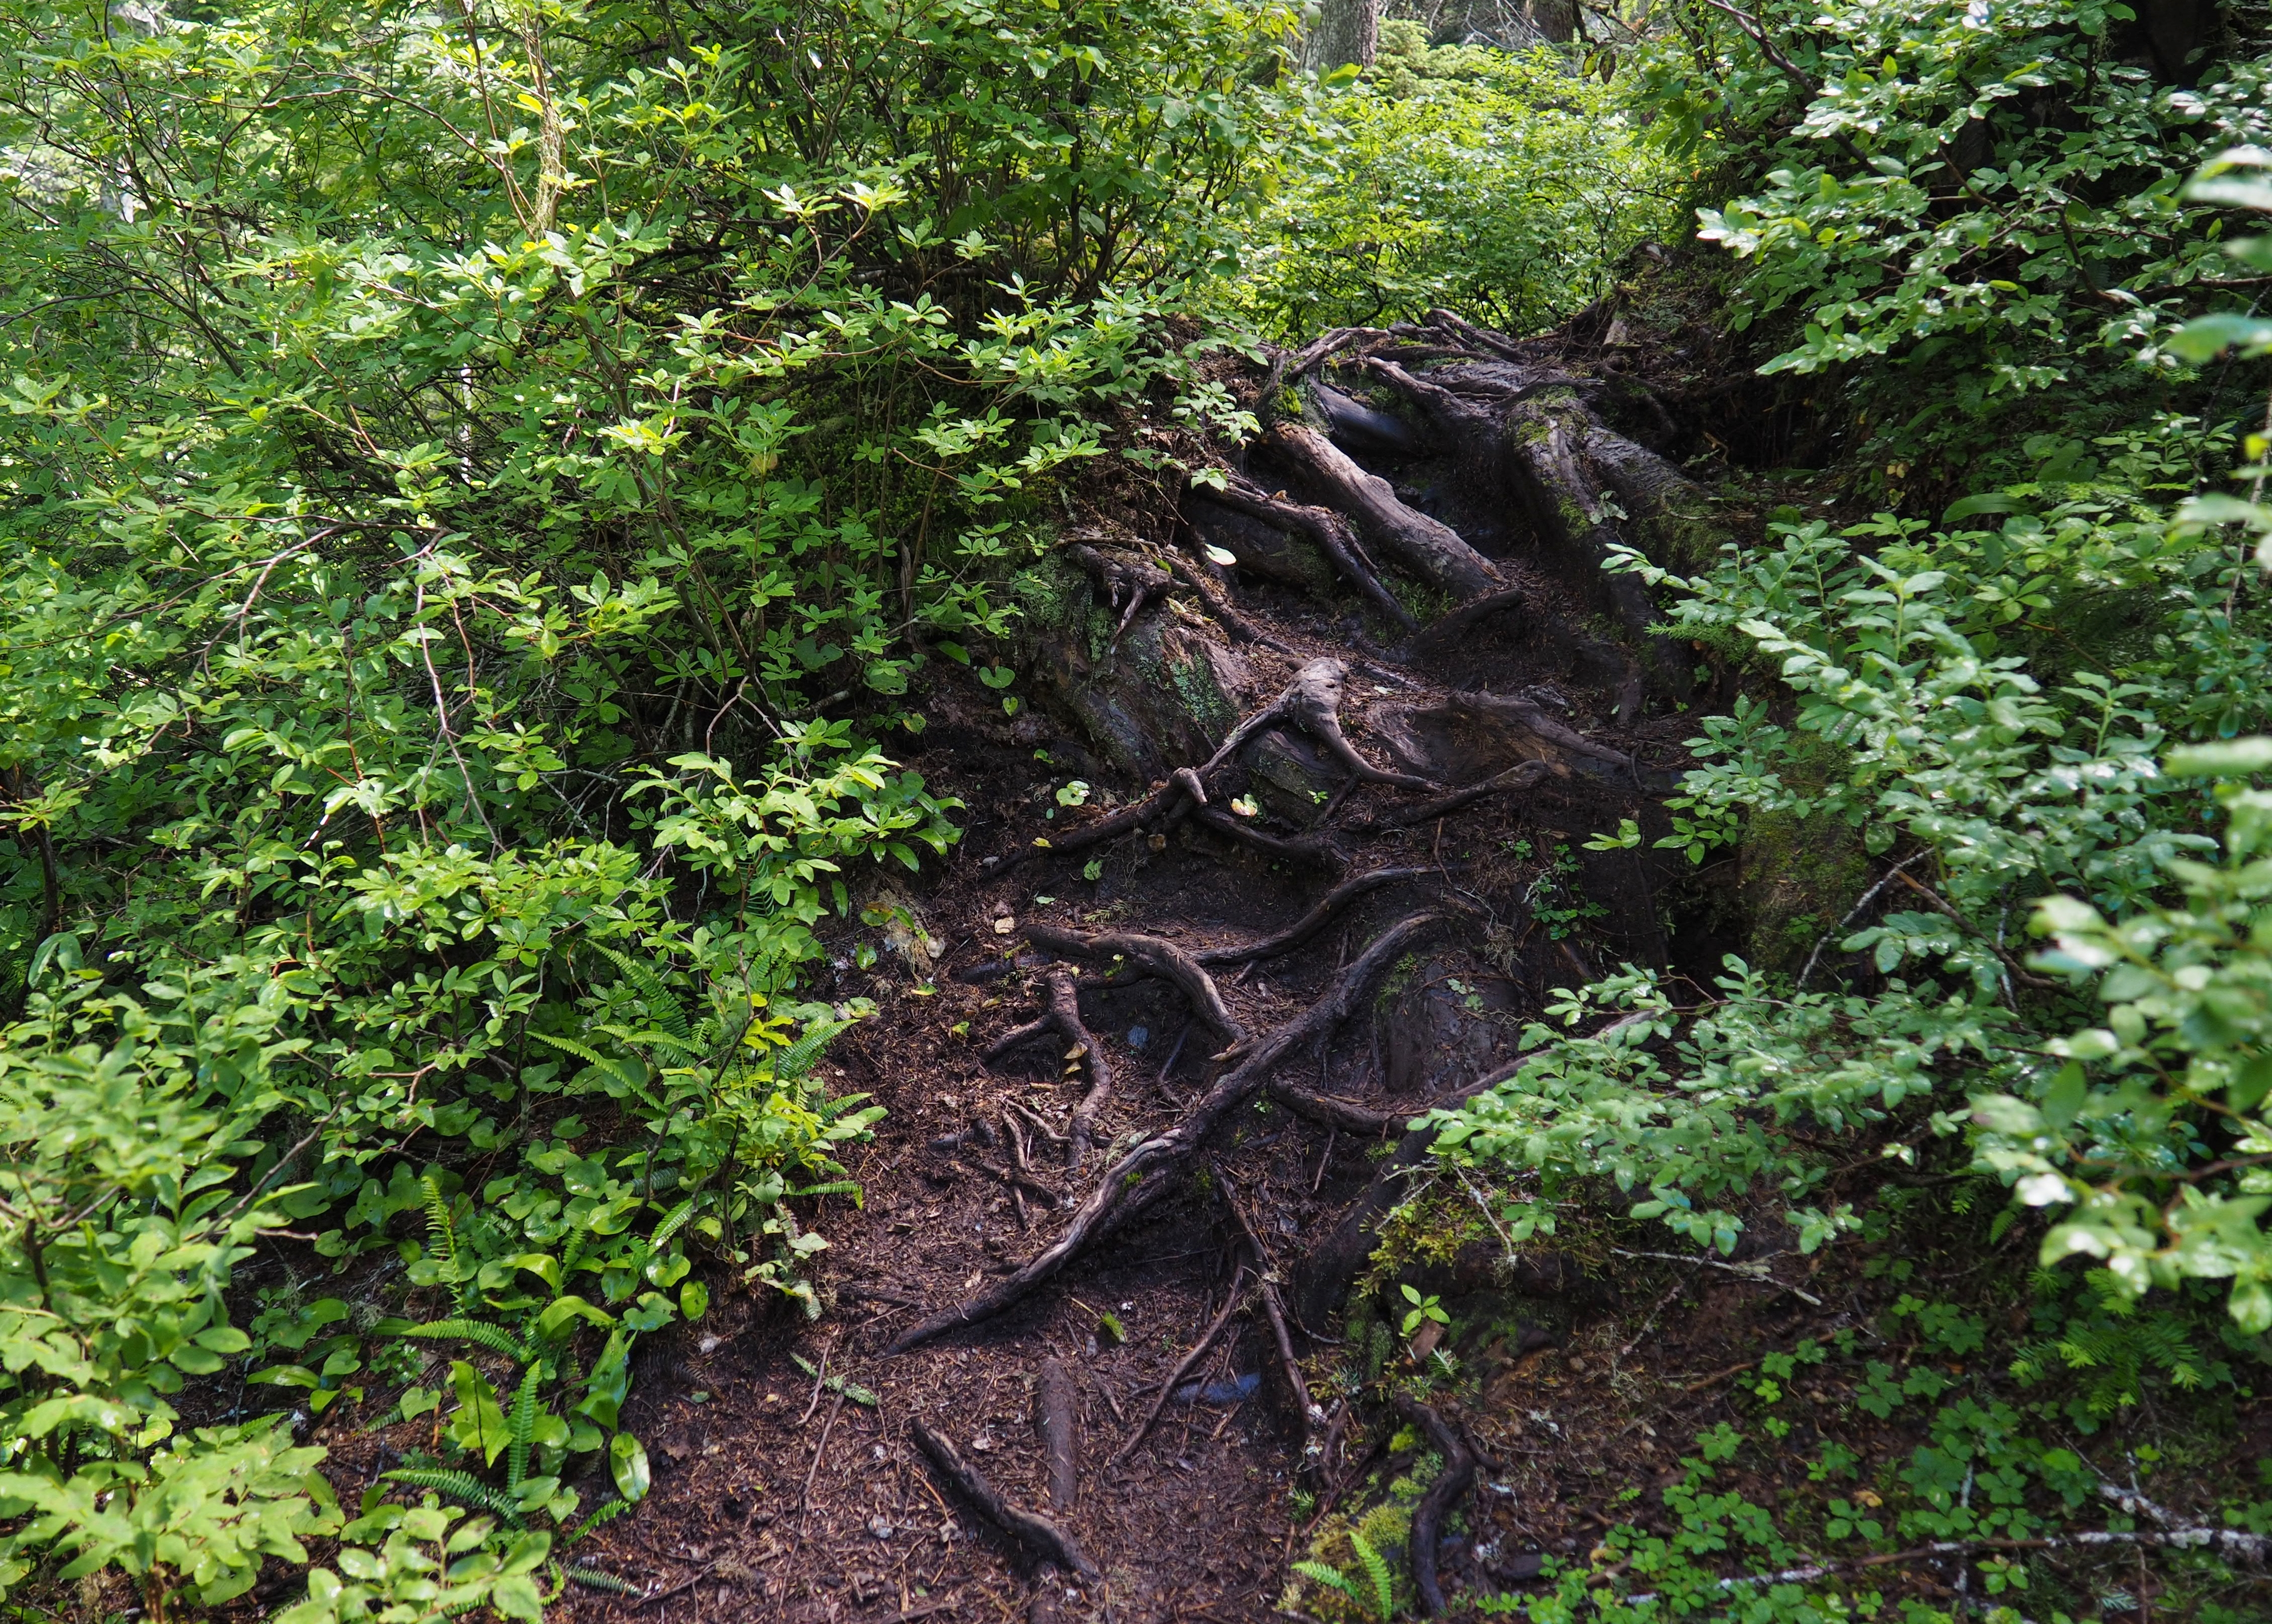 Often slick from the area's abundant rainfall, treacherously exposed roots and worn, uneven stone are the typical surface of this undermaintained trail. Walt Bailey Trail, July 24, 2016.